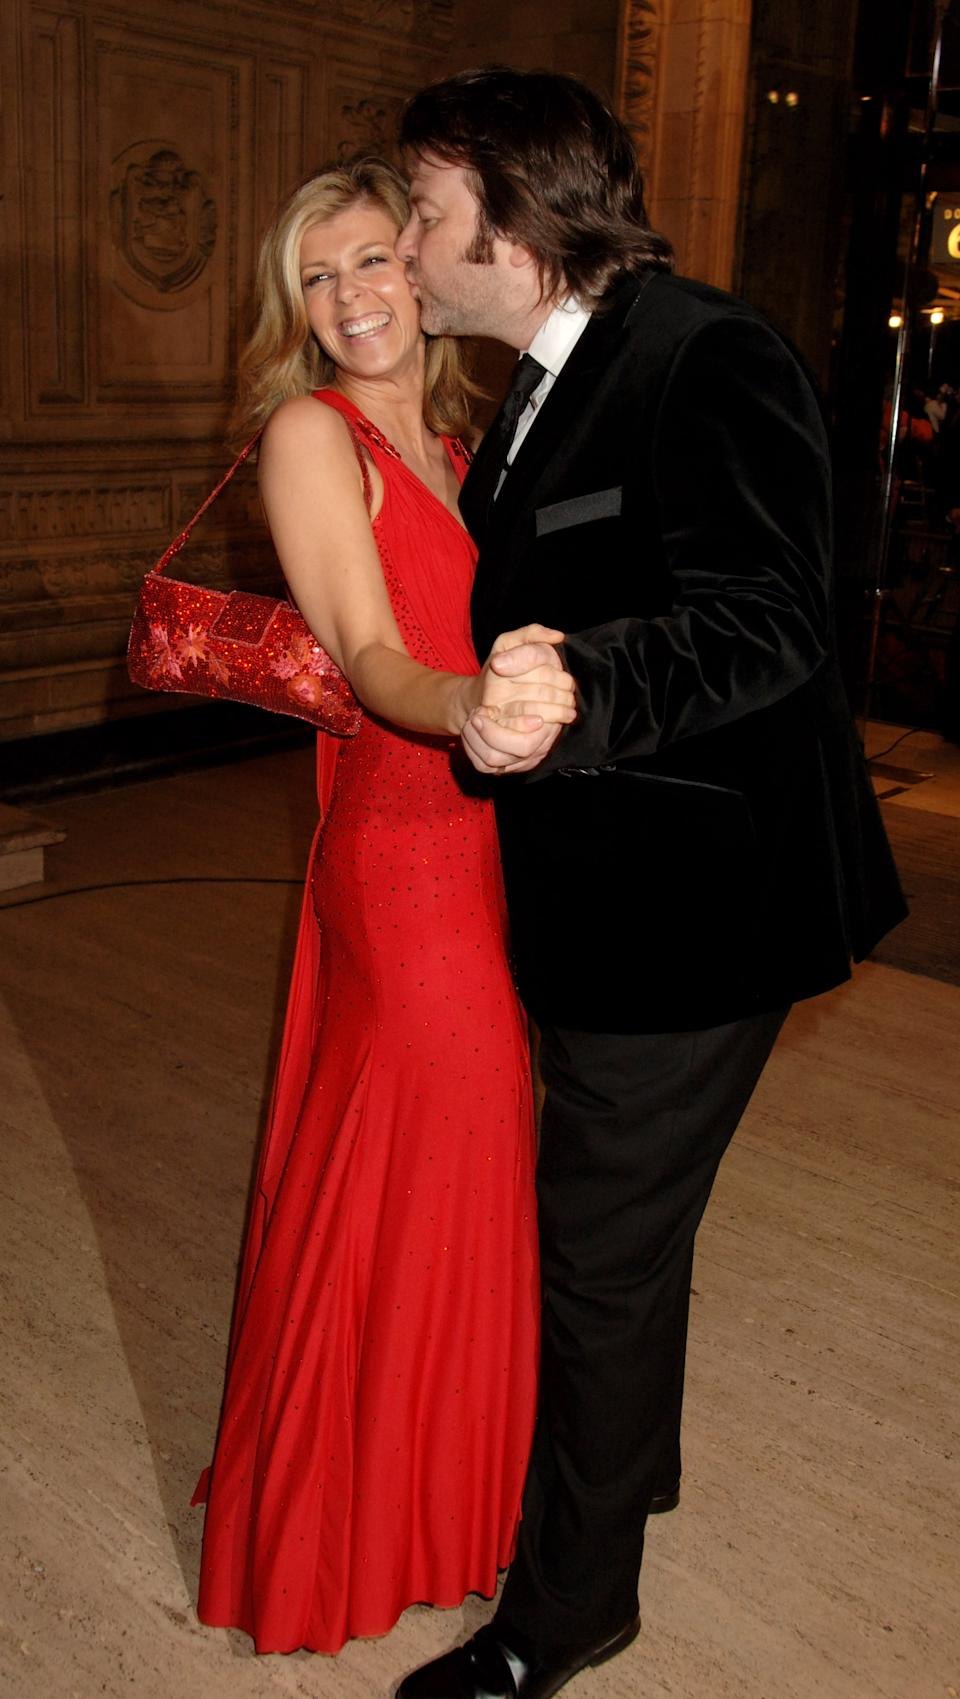 LONDON - OCTOBER 31:  (EMBARGOED FOR PUBLICATION IN UK TABLOID NEWSPAPERS UNTIL 48 HOURS AFTER CREATE DATE AND TIME)  Kate Garraway and her husband Derek Draper arrive at the National Television Awards 2007, at the Royal Albert Hall on October 31, 2007 in London, England.  (Photo by Dave M. Benett/Getty Images)